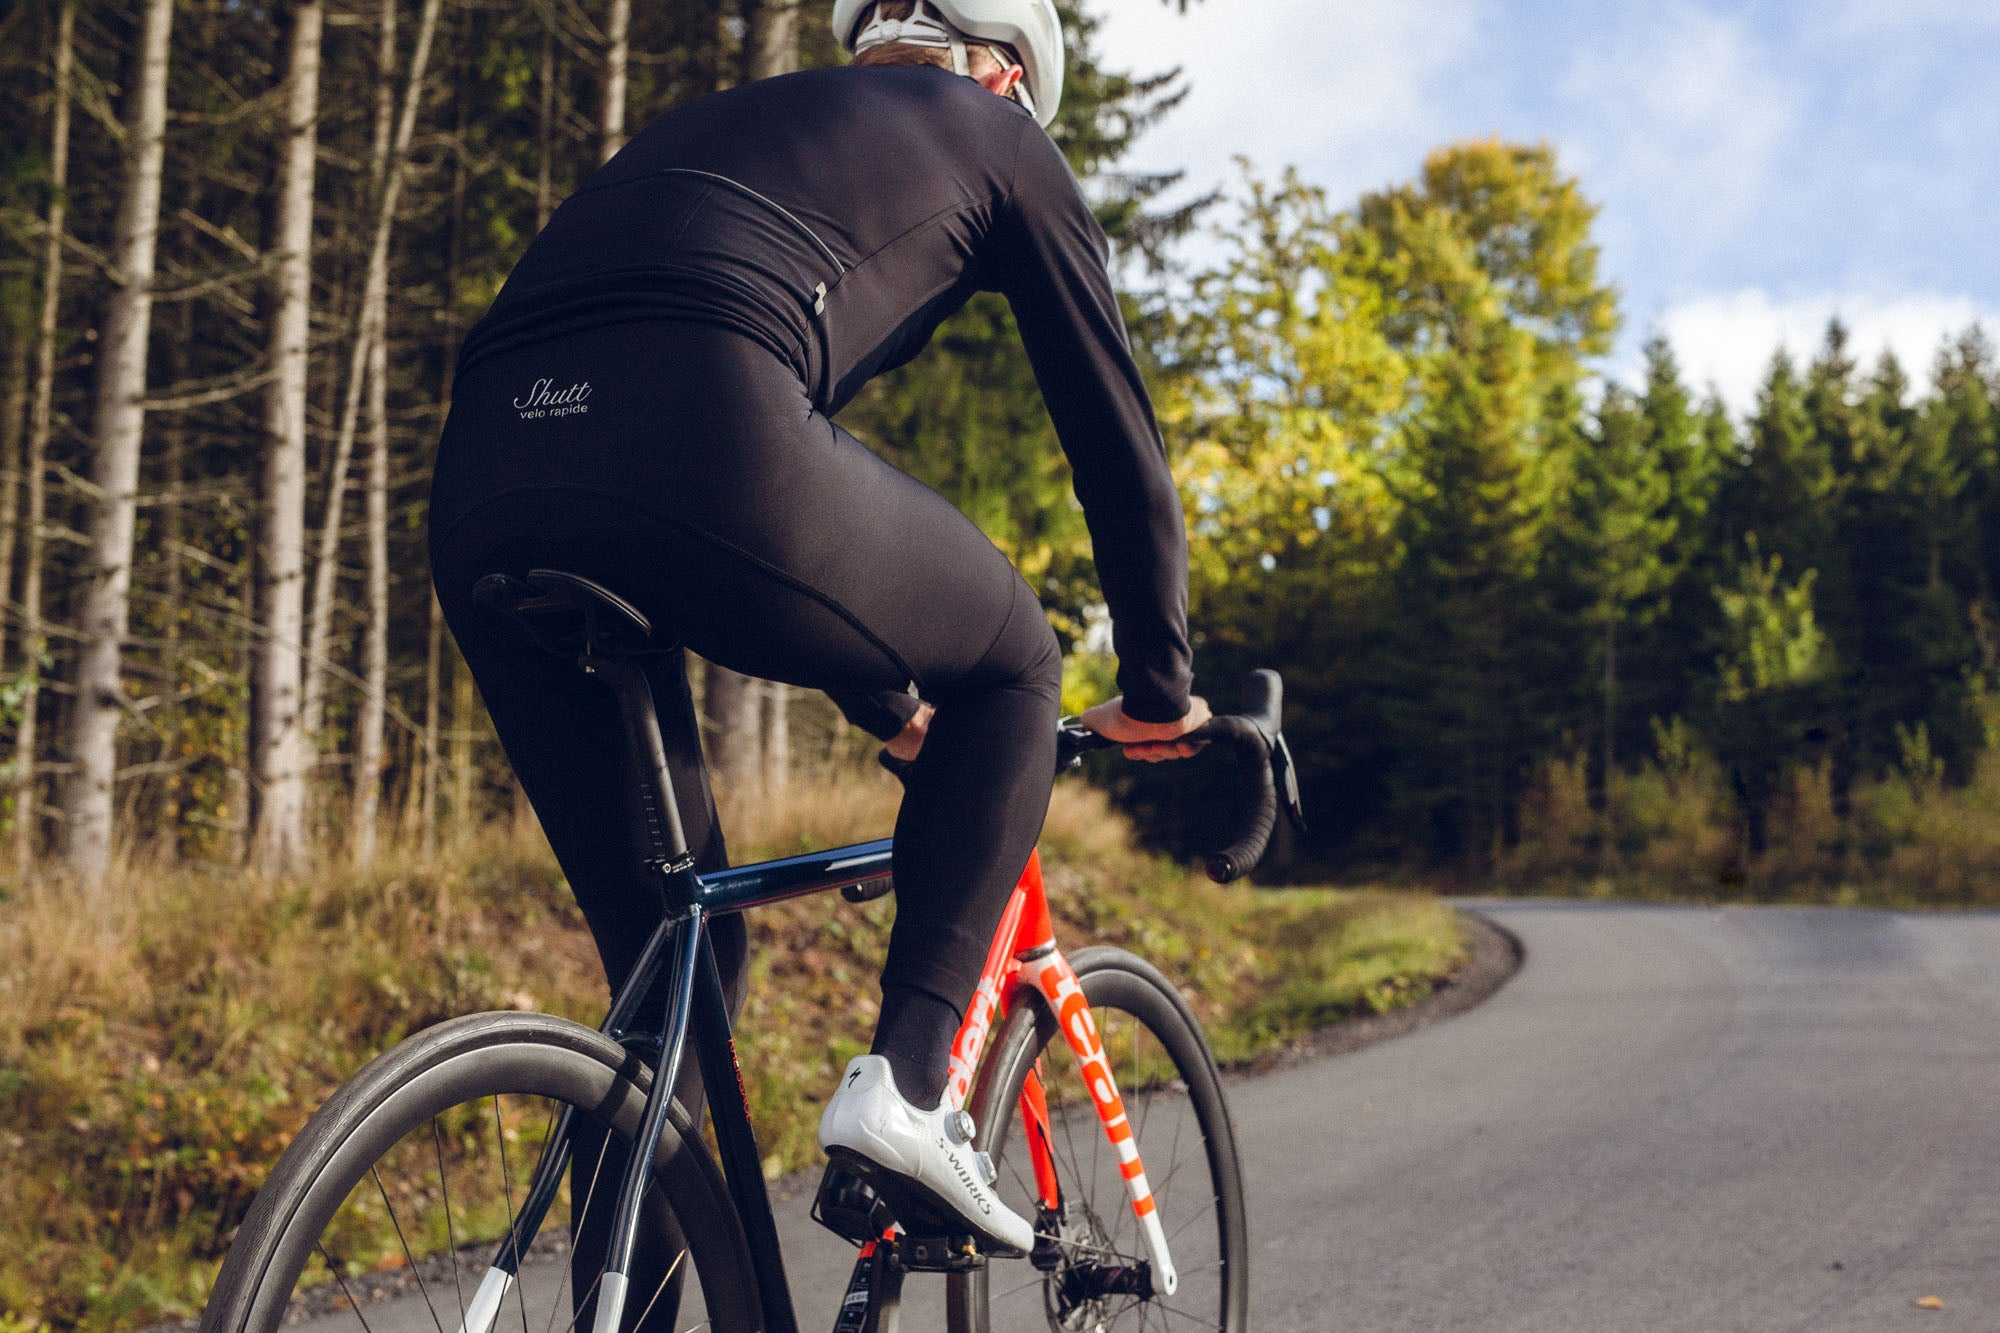 Shutt Tourmalet Winter Bib Tights from Recycled Fabric